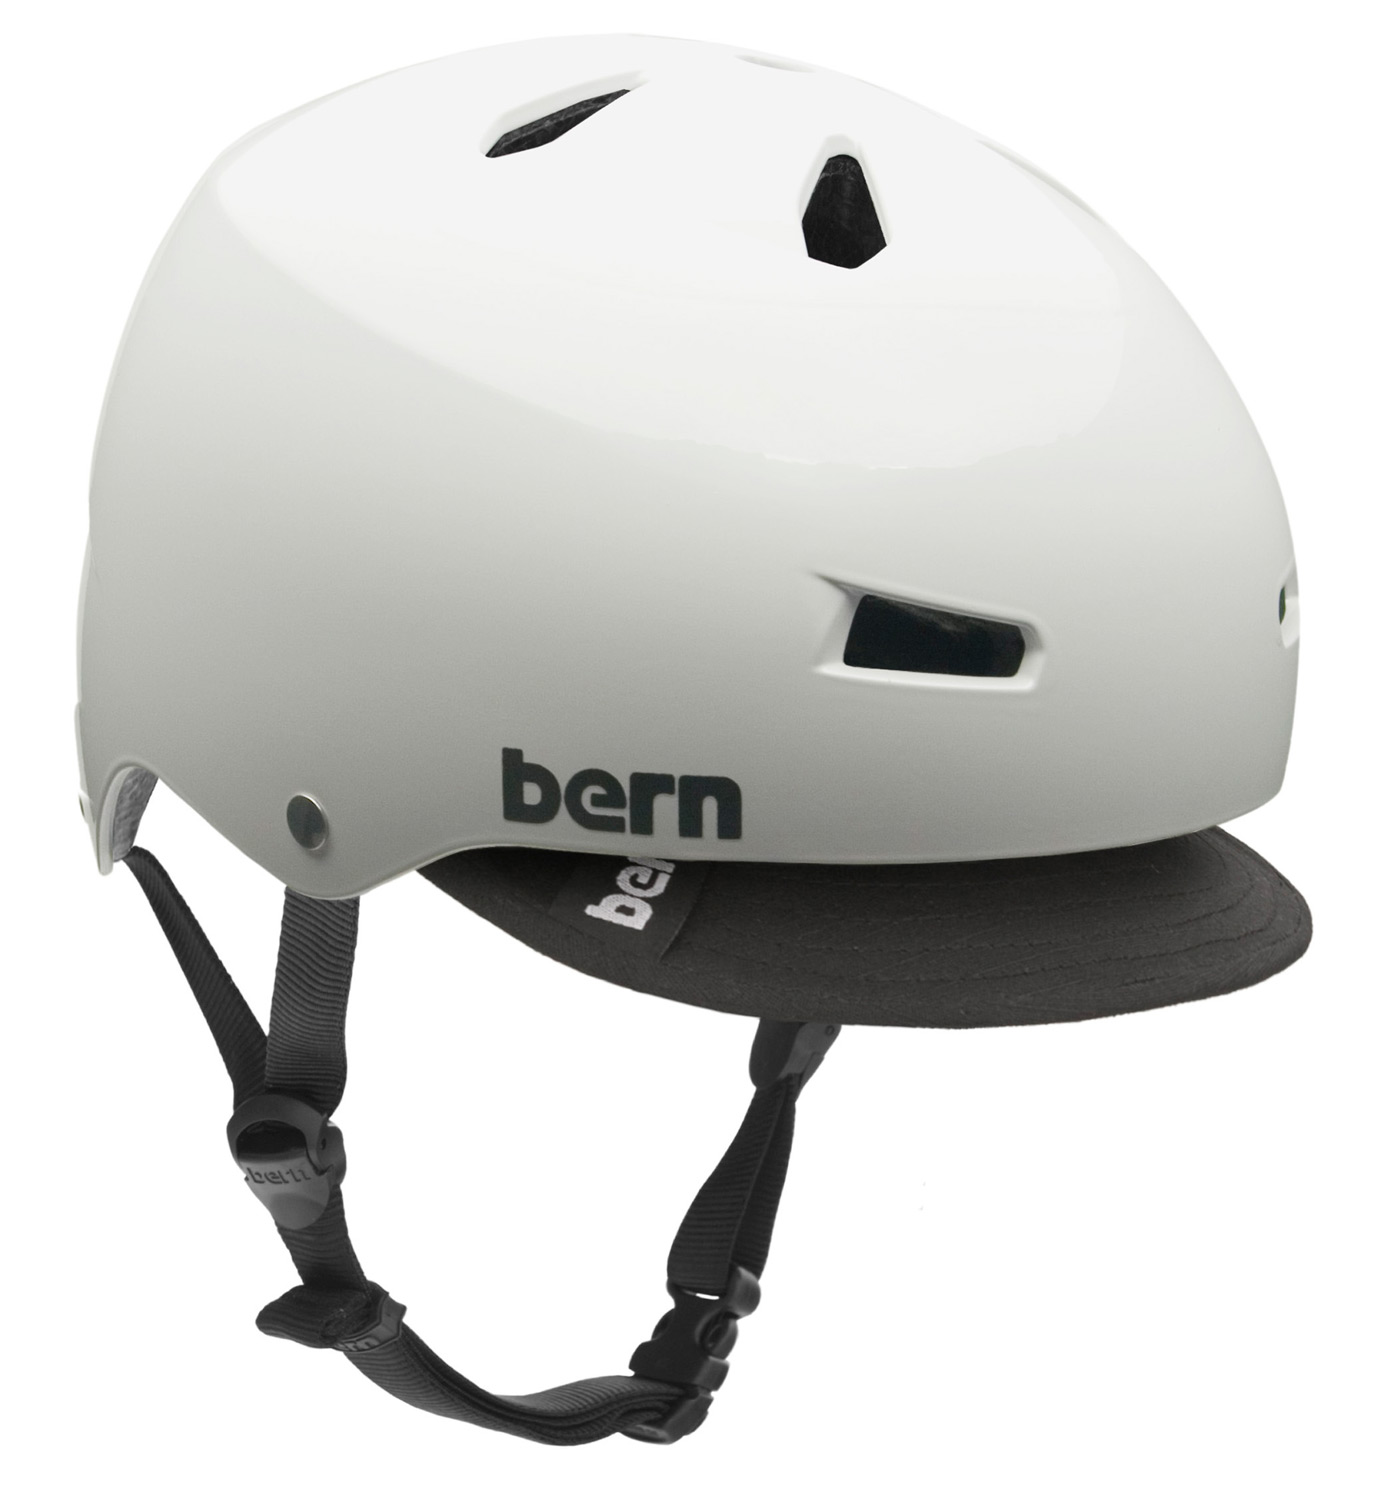 Ski The Macon bike helmet takes skate style to your everyday commute. Core clean lines and durable construction team up with a removable visor for protection against the sun and inclement weather. Bern's All Season liner system allows you to use the Macon on your snowboard, skis or bike.Key Features of the Bern Macon w/ Visor Bike Helmet: Available as a helmet with ABS shell and EPS hard foam. EPS hard foam meets ASTM F 2040 and EN 1077B standards for snow and ski, CPSC and EN 1078 standards for bike and skate. 19.1 oz - $60.00